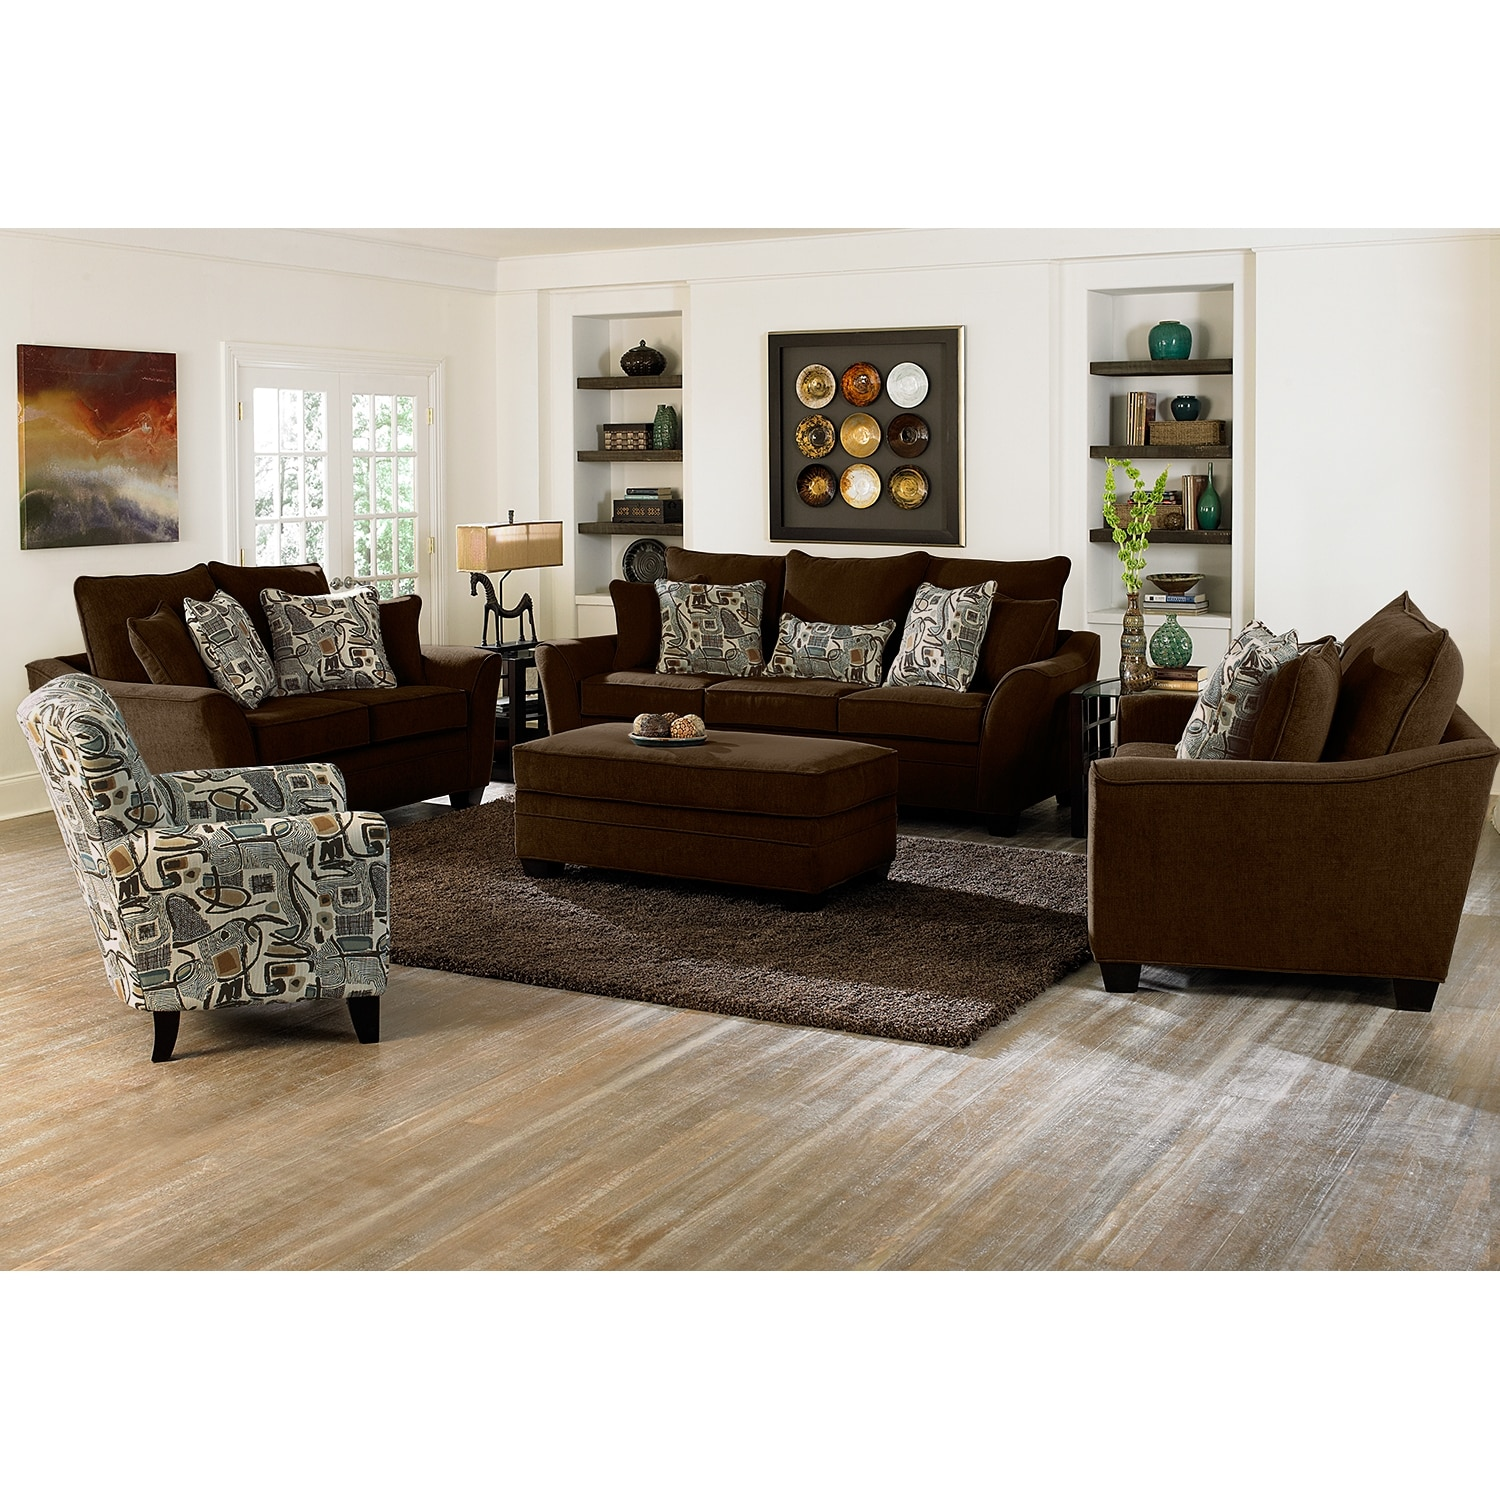 Mandalay 2 pc living room waccent chair value city furniture